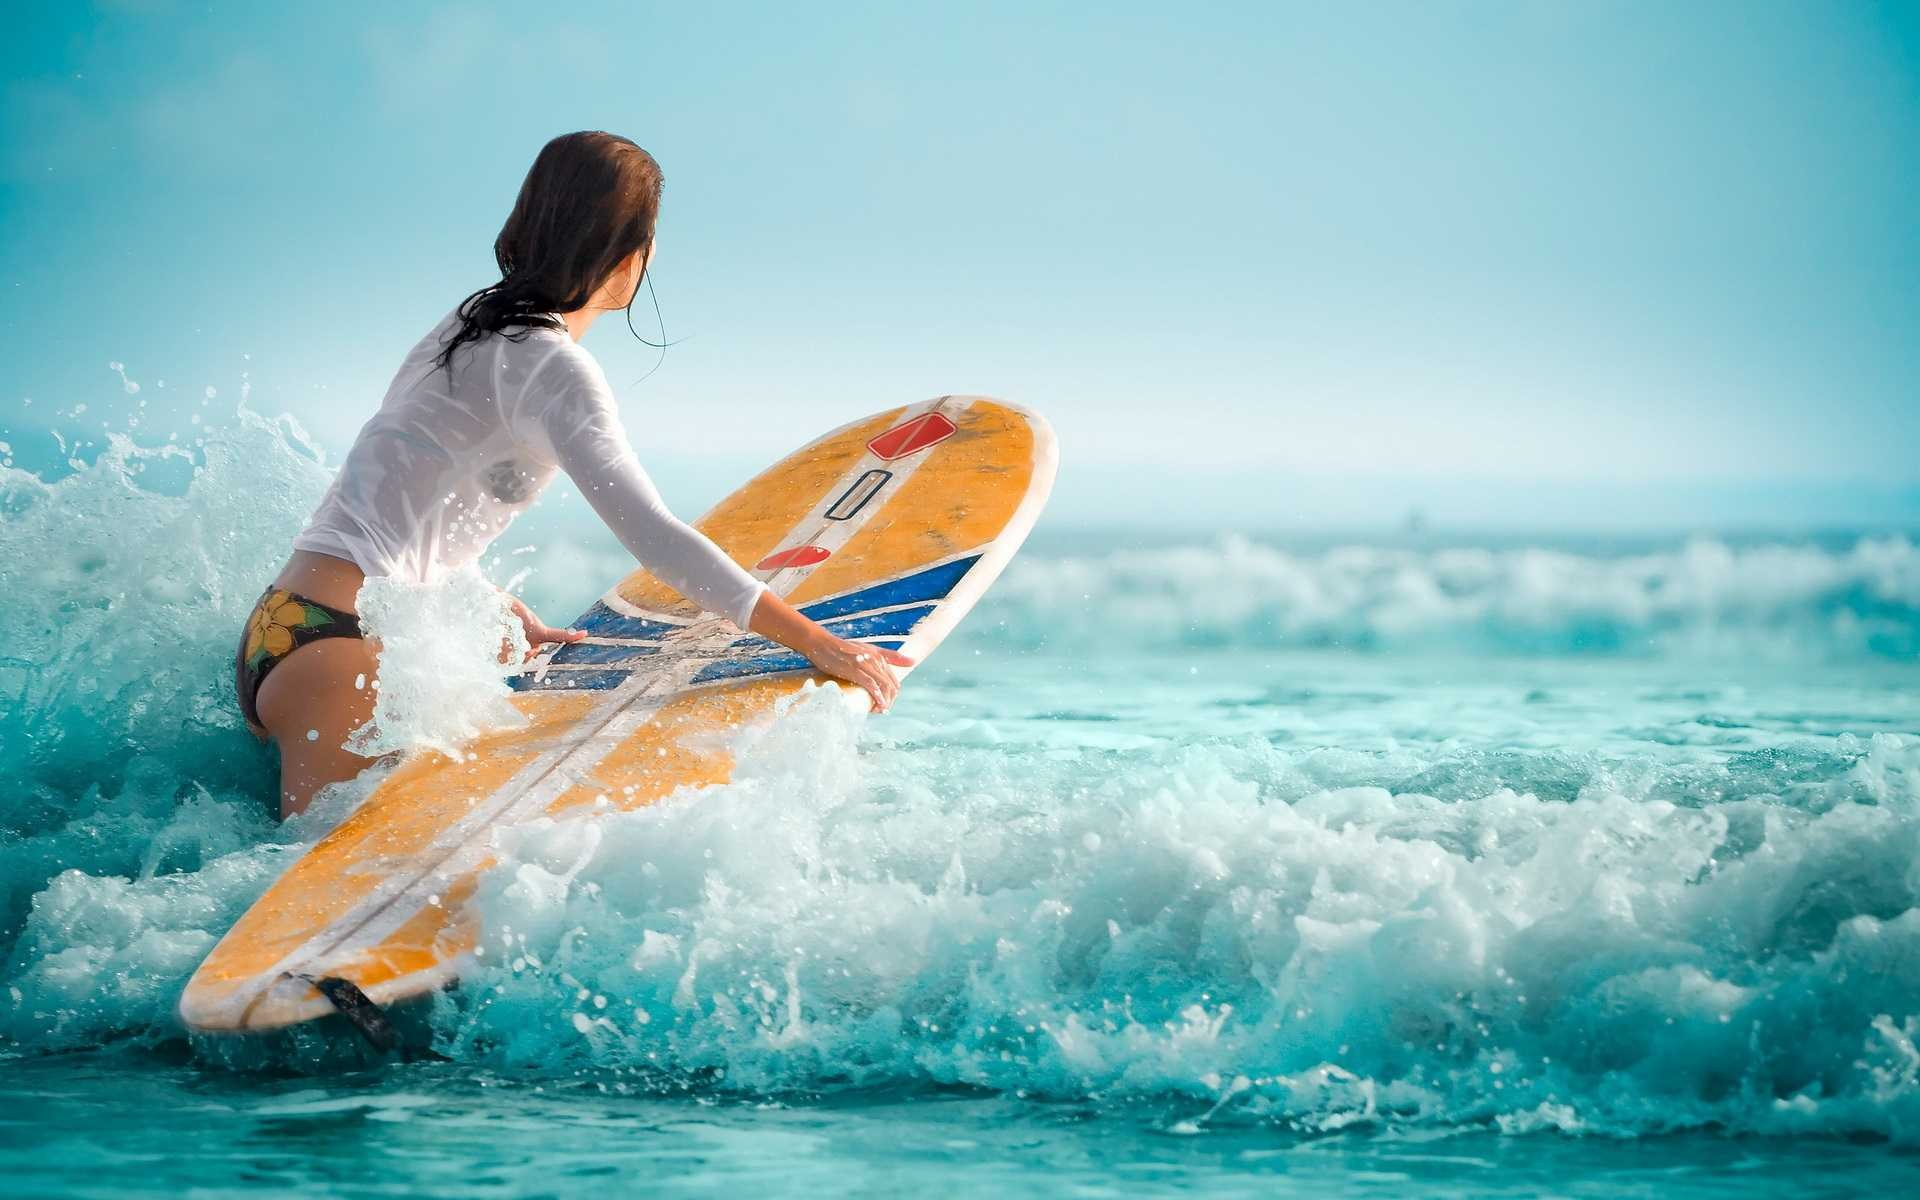 Surfer Girl HD Wallpaper   New HD Wallpapers 1920x1200